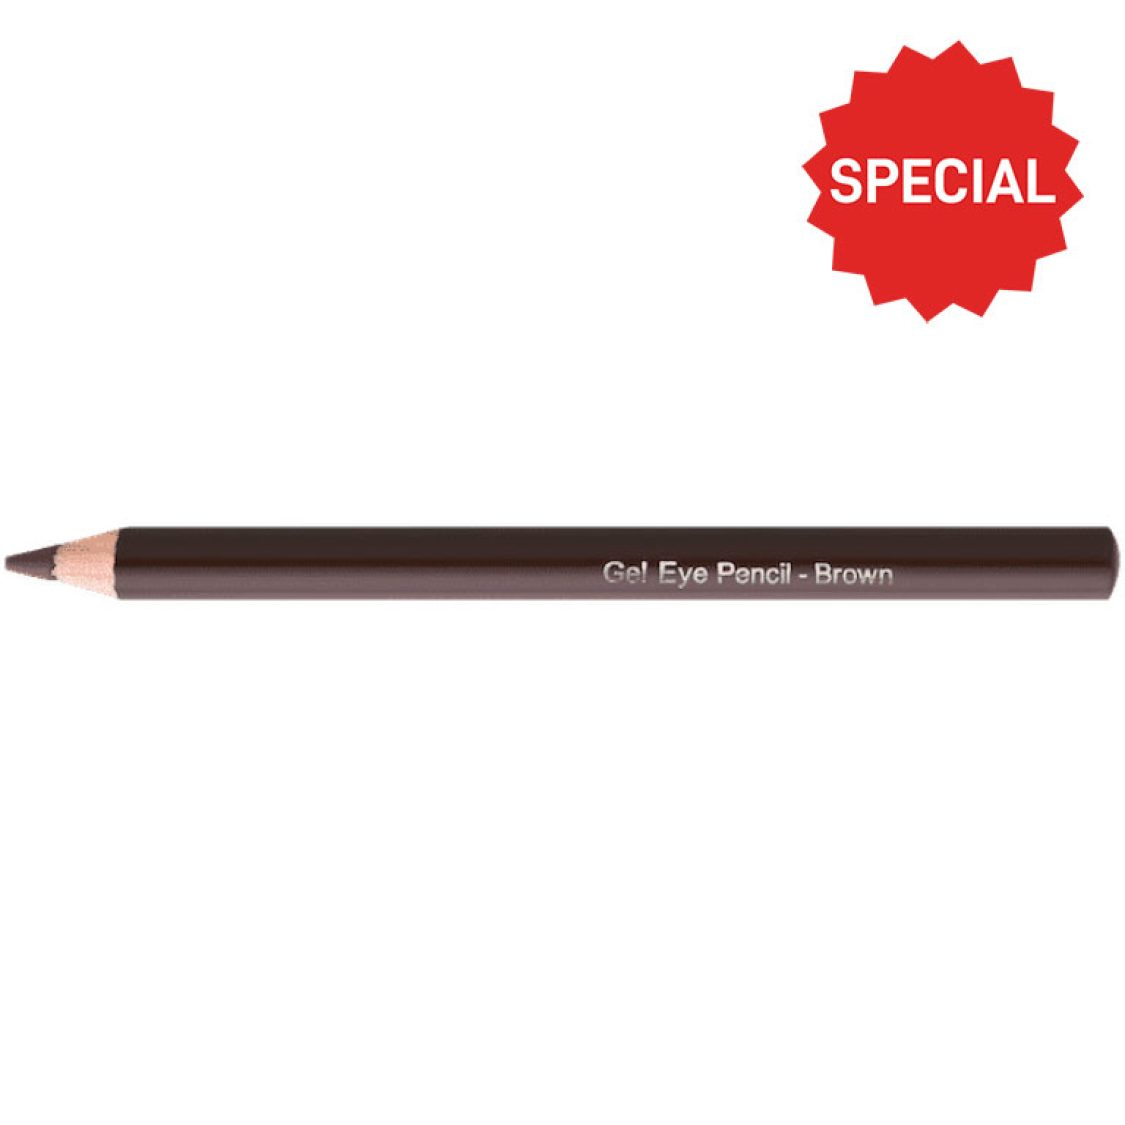 Hannon - Brown Gel Eye Pencil